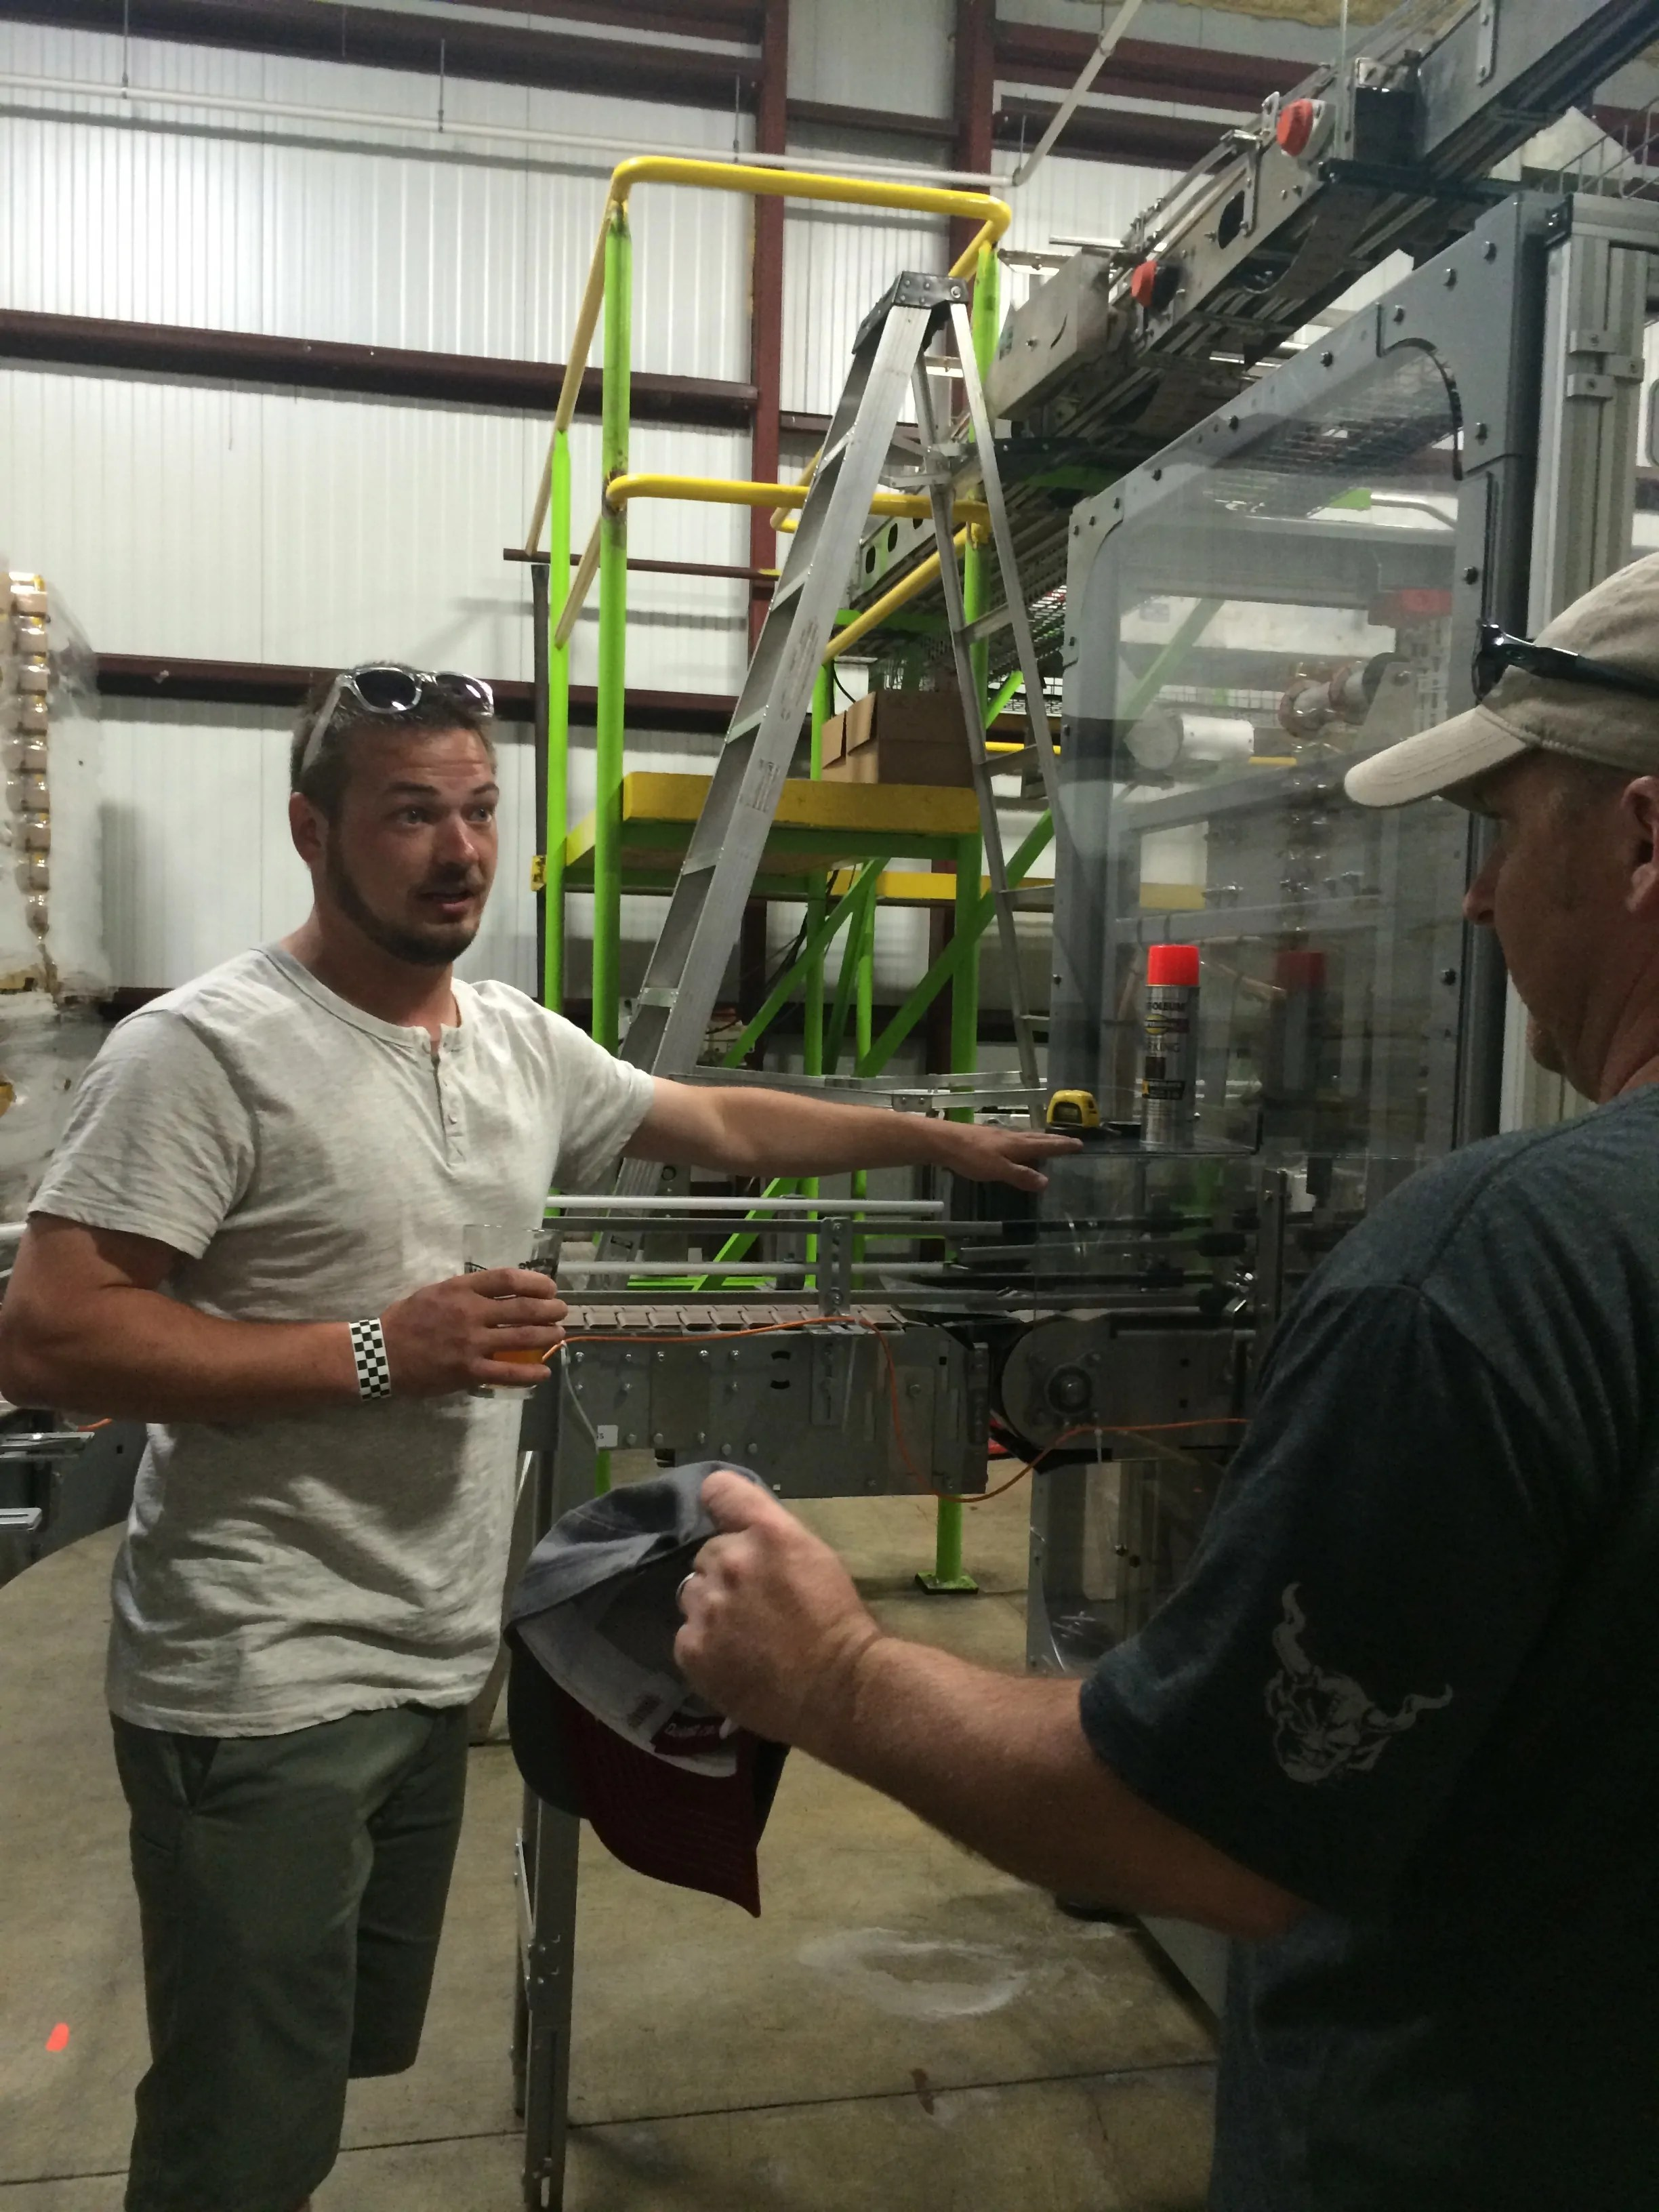 Chris shows us the new Ska Brewing canning line